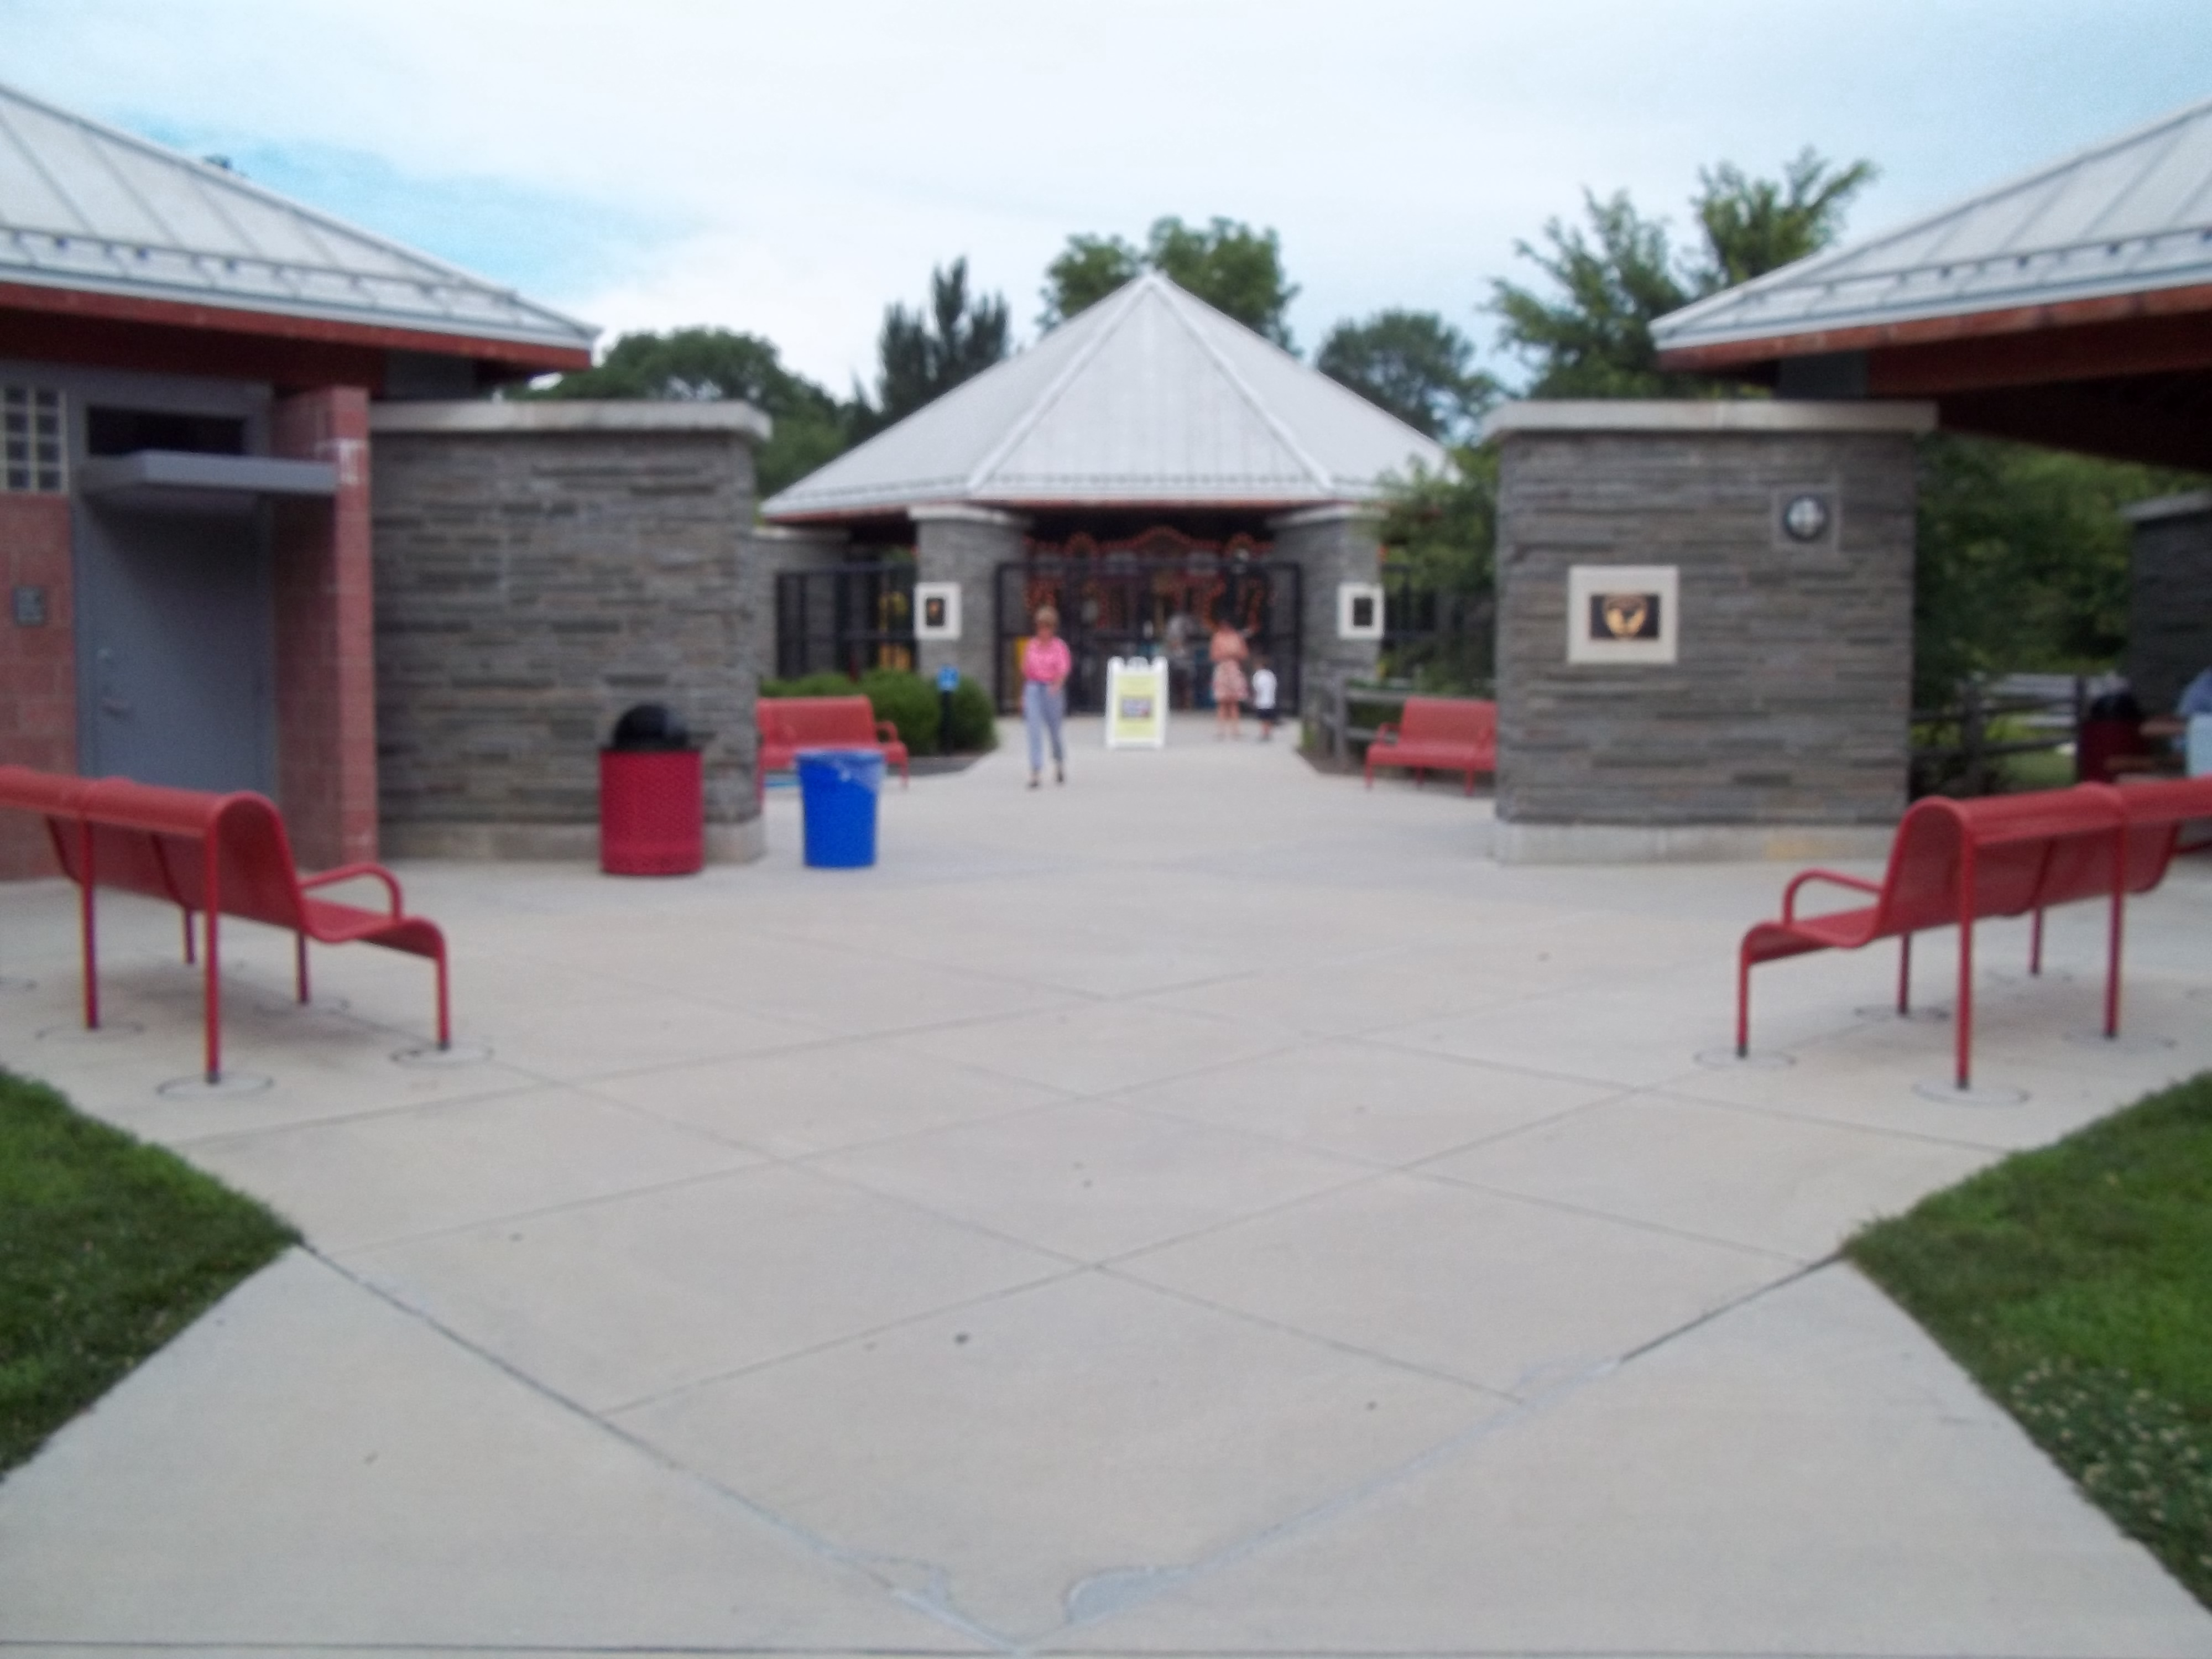 The entrance for Clemy an inclusive Playground